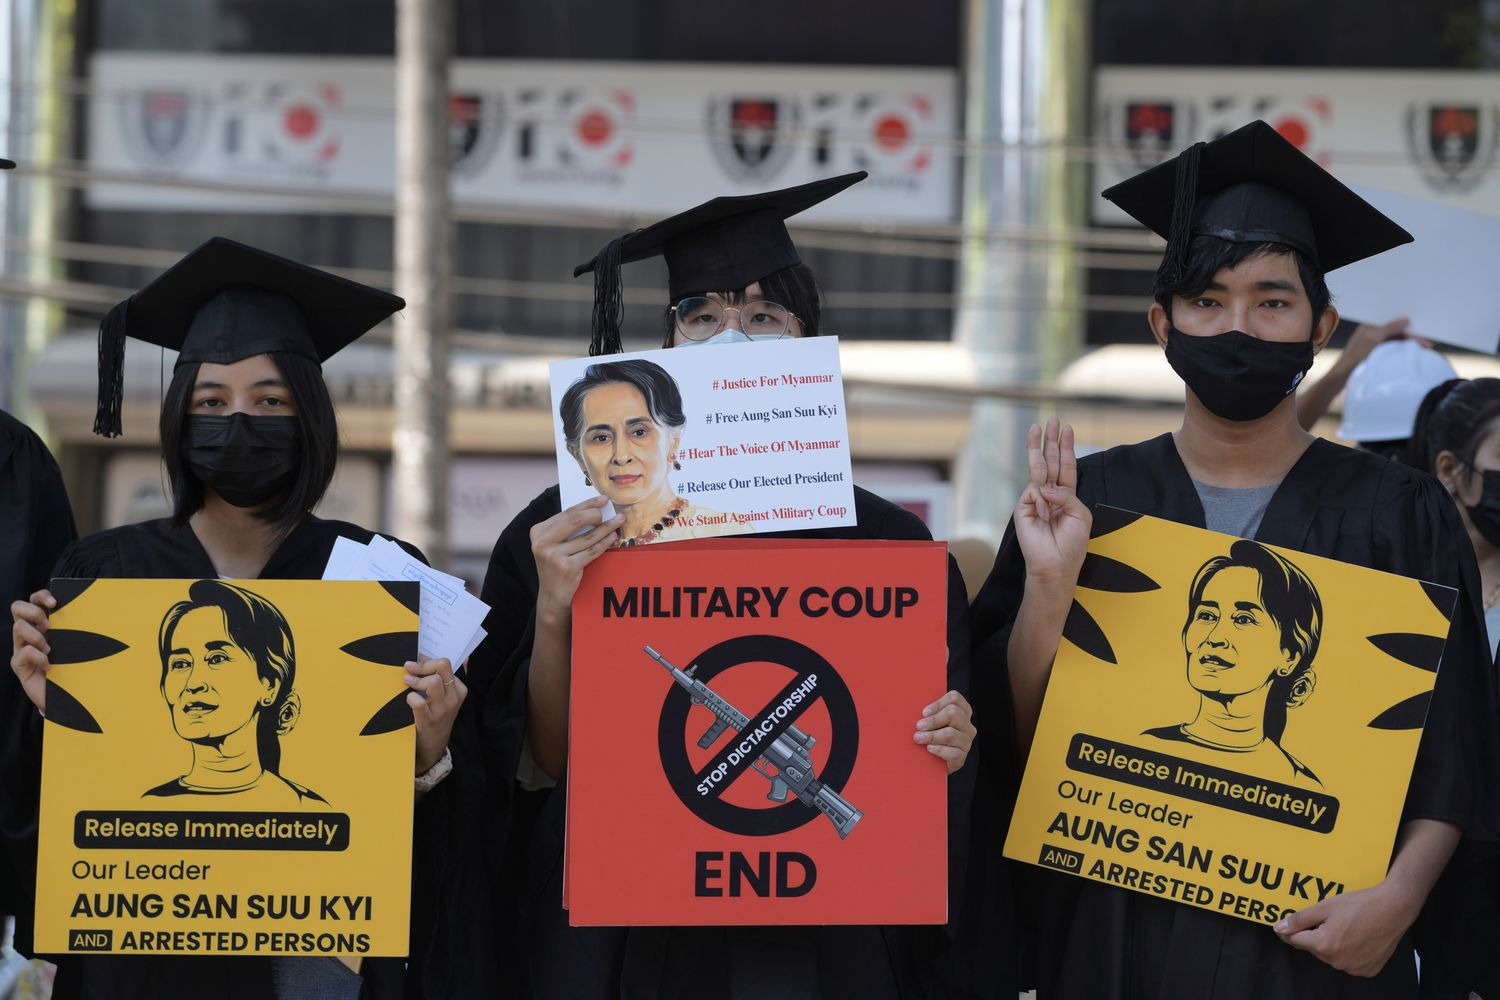 Demonstrators hold signs during a protest against the military coup and demanding the release of elected leader Aung San Suu Kyi, in Yangon on Saturday. (Reuters photo)